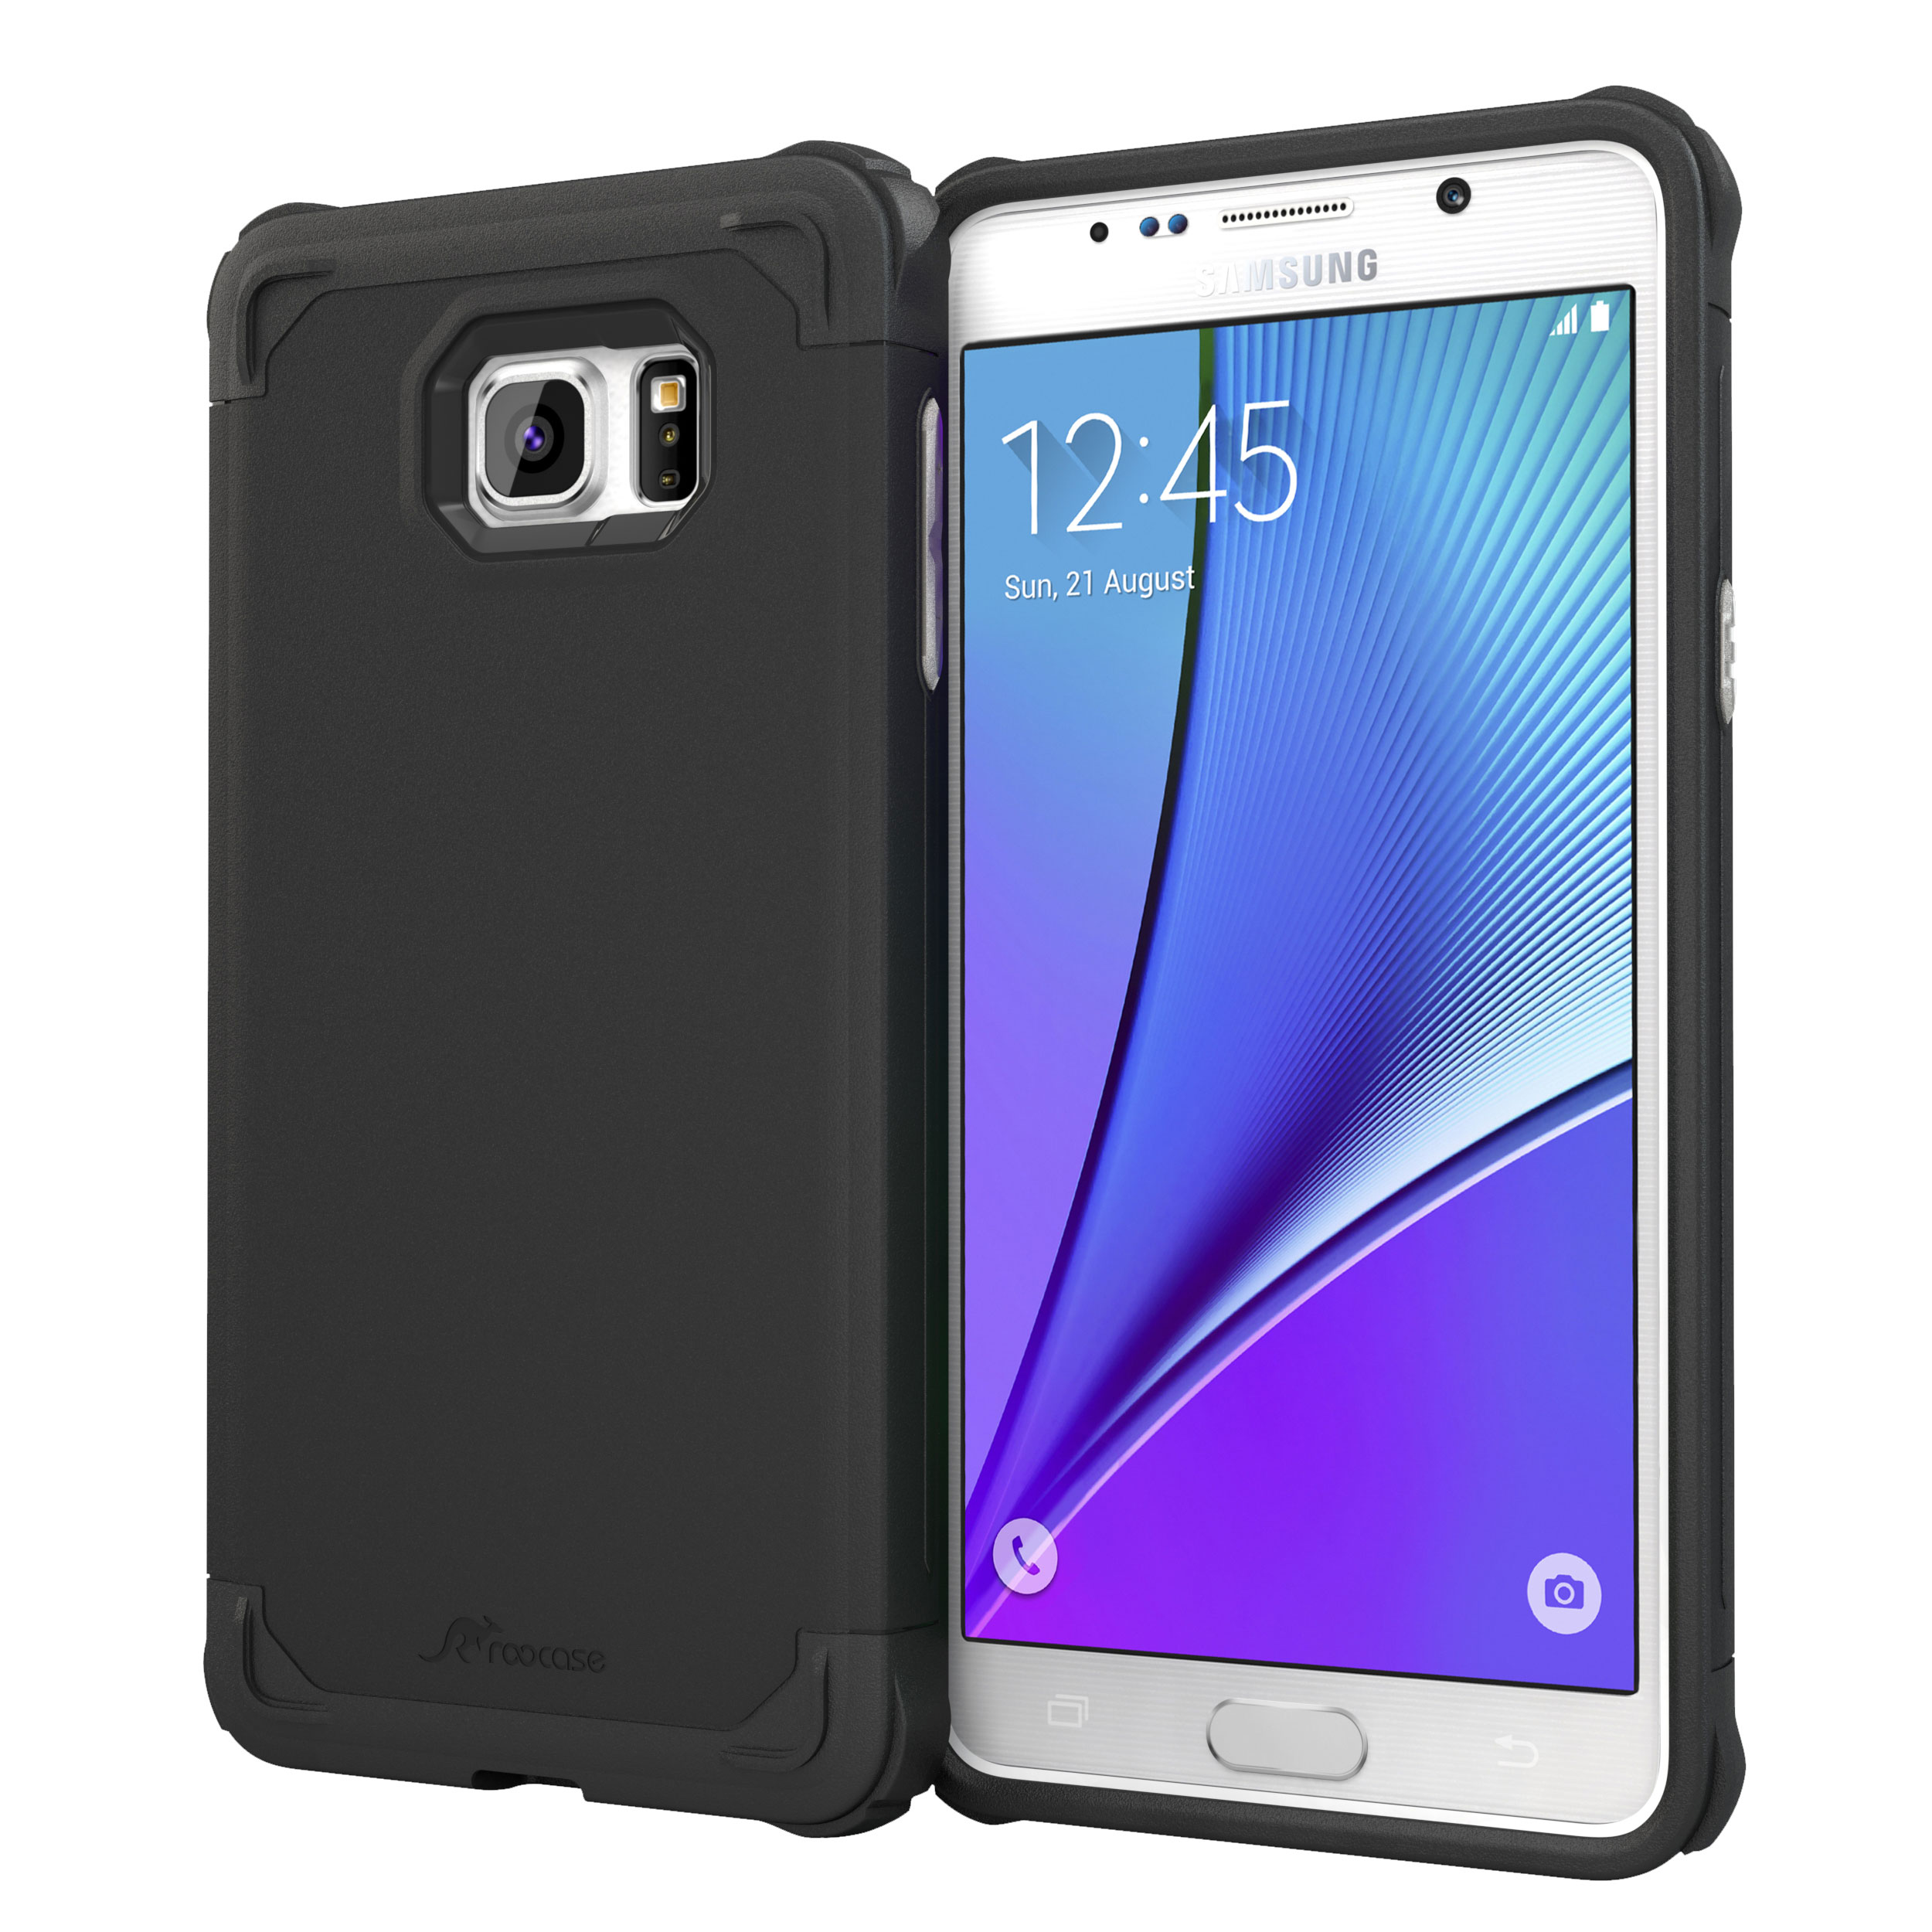 Galaxy Note5 Case, roocase [Exec Tough] Galaxy Note5 Slim Fit Case Hybrid PC / TPU [Corner Protection] Armor Cover Case for Samsung Galaxy Note 5 (2015)